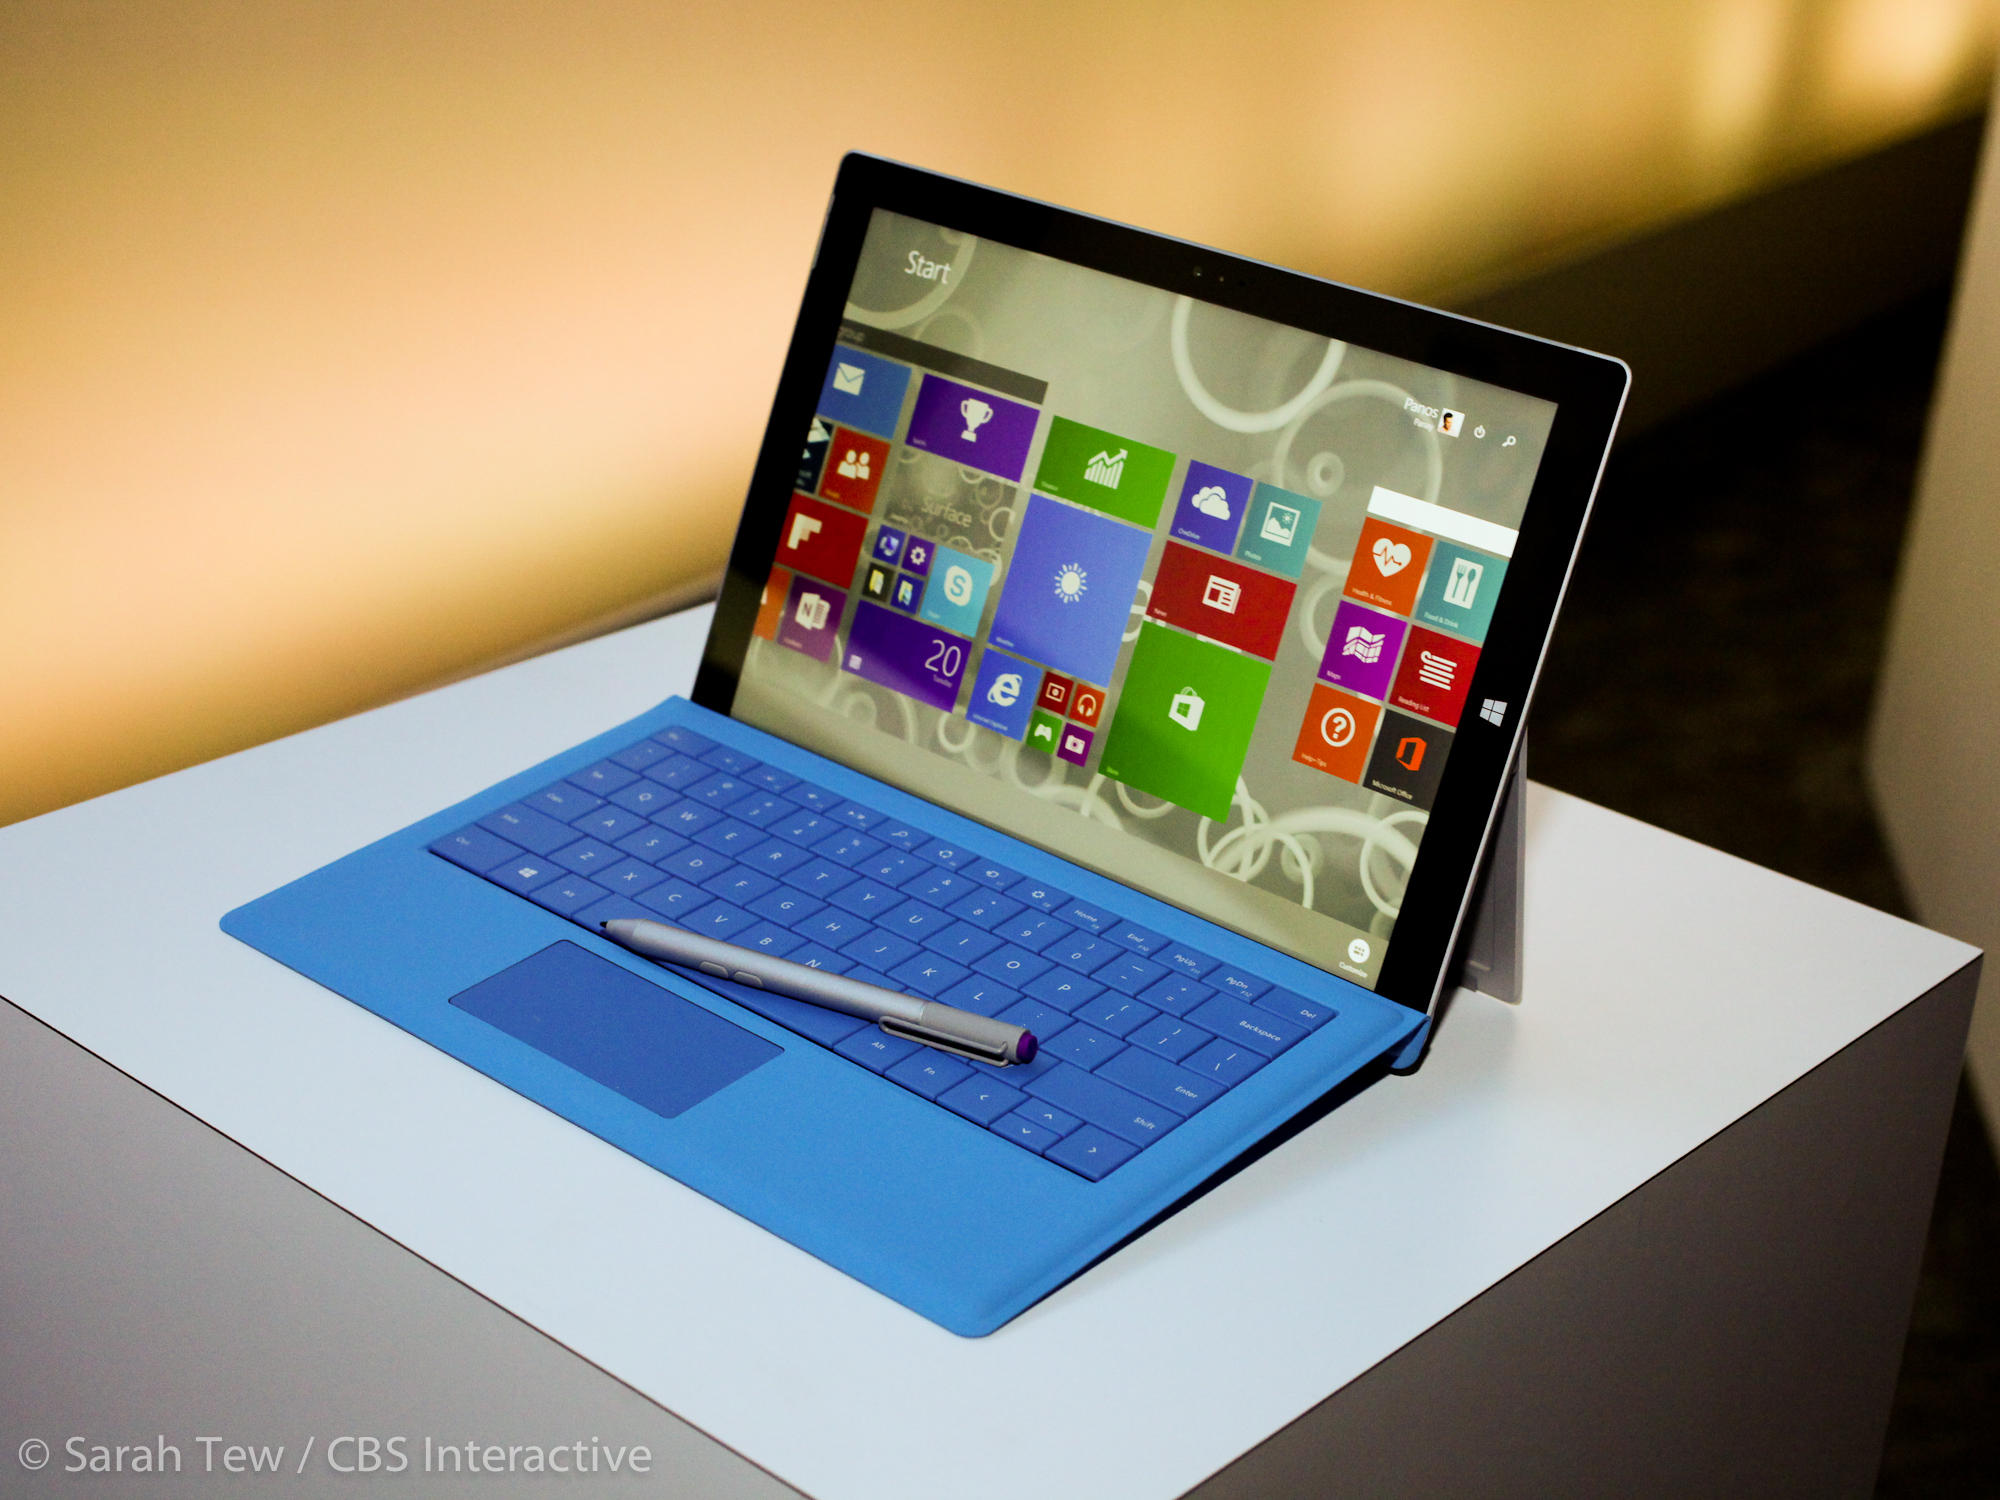 015microsoft-surface-pro-3-product-photos.jpg